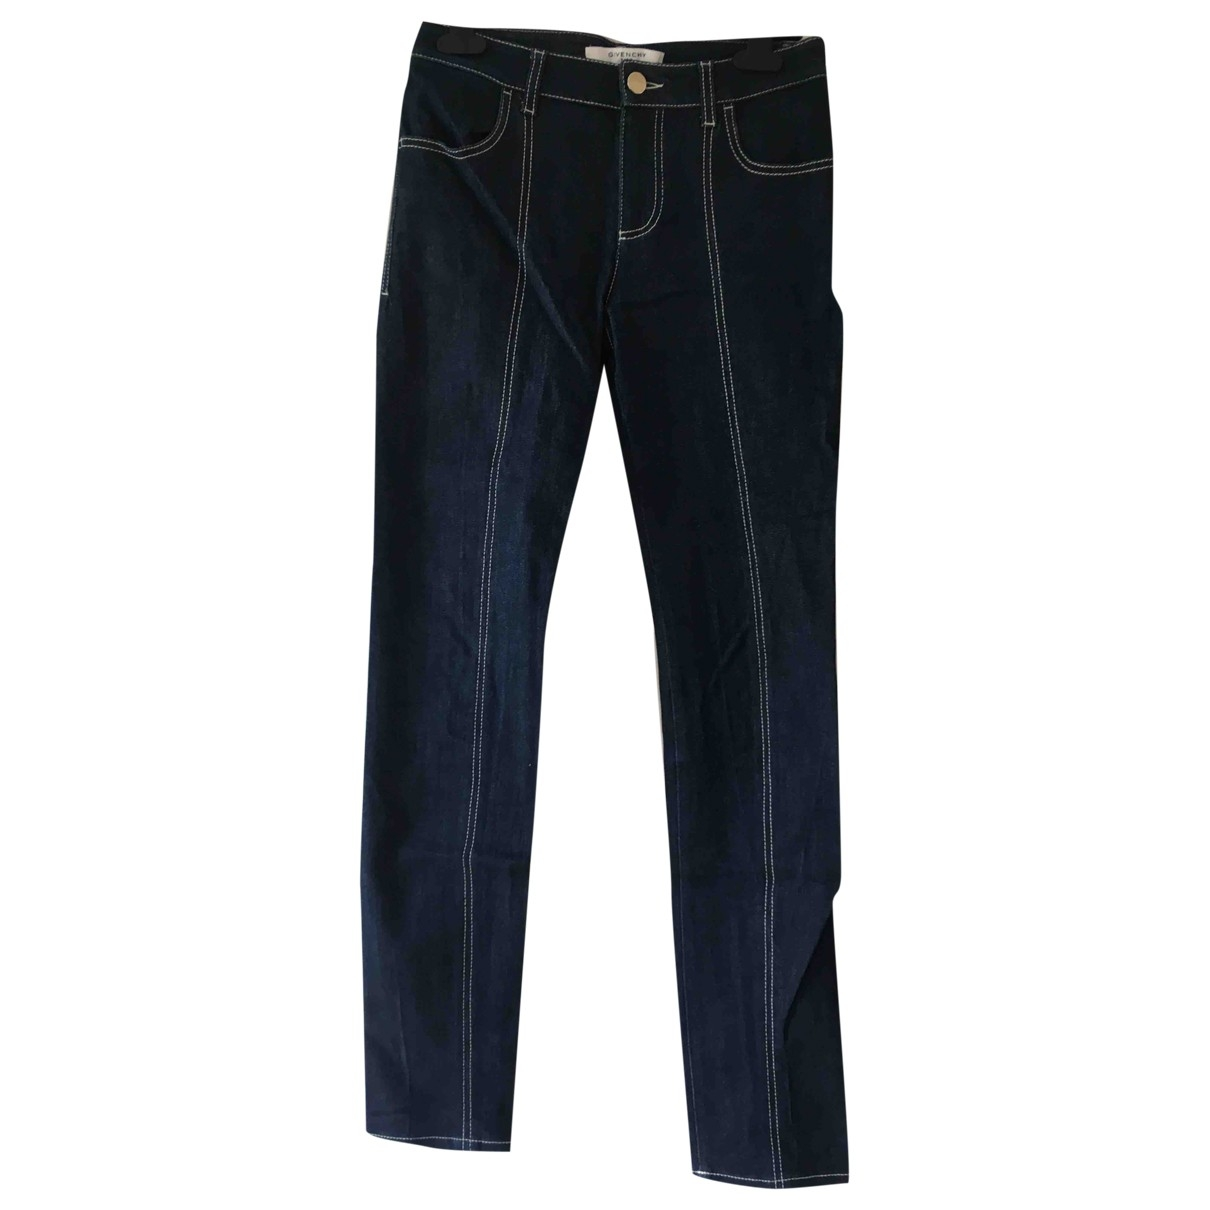 Givenchy \N Blue Cotton Jeans for Women 34 FR